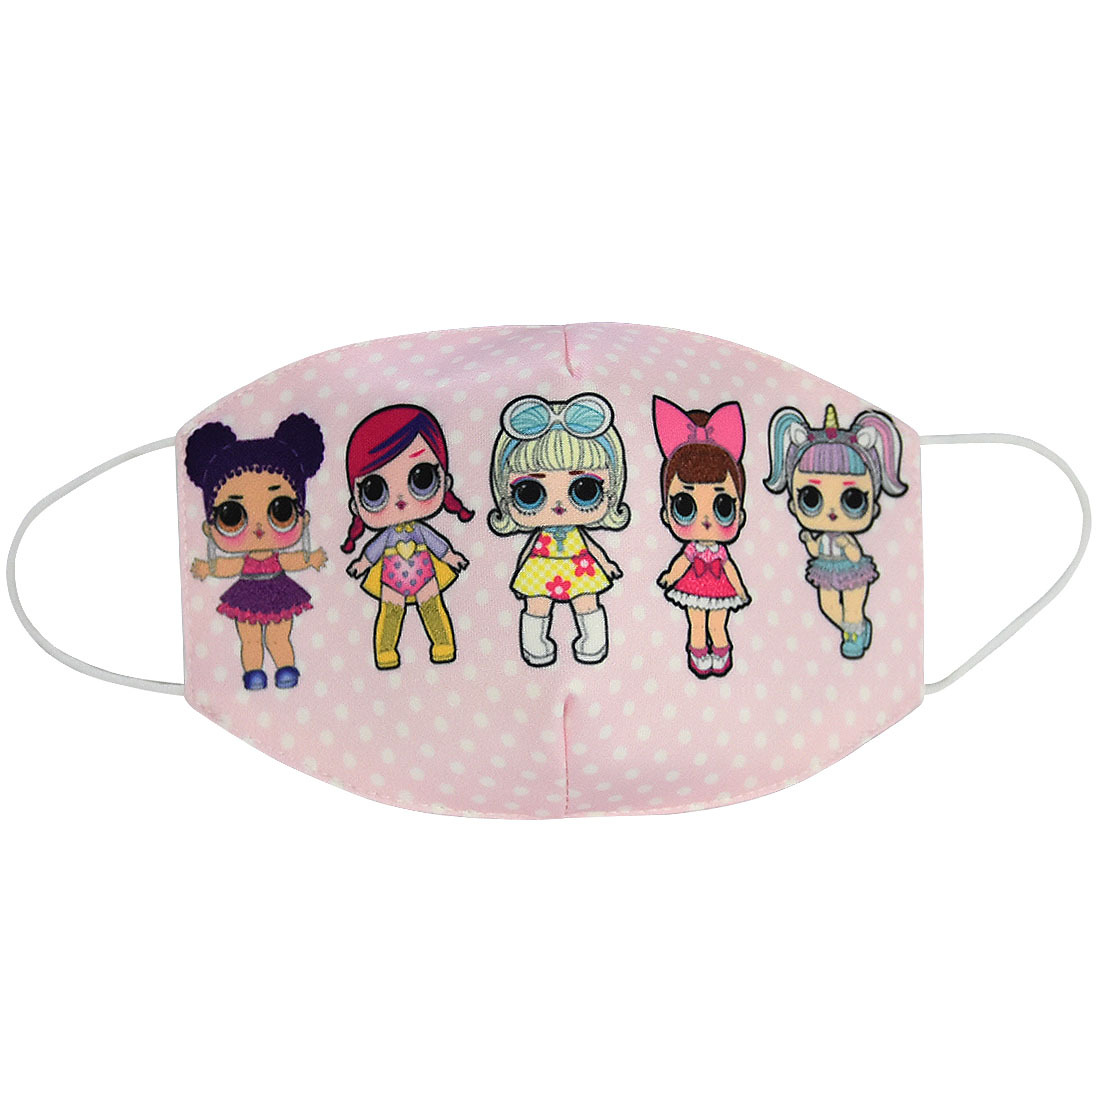 Cartoon Printed Masks Made Of Pure Cotton Material For Men And Women 1